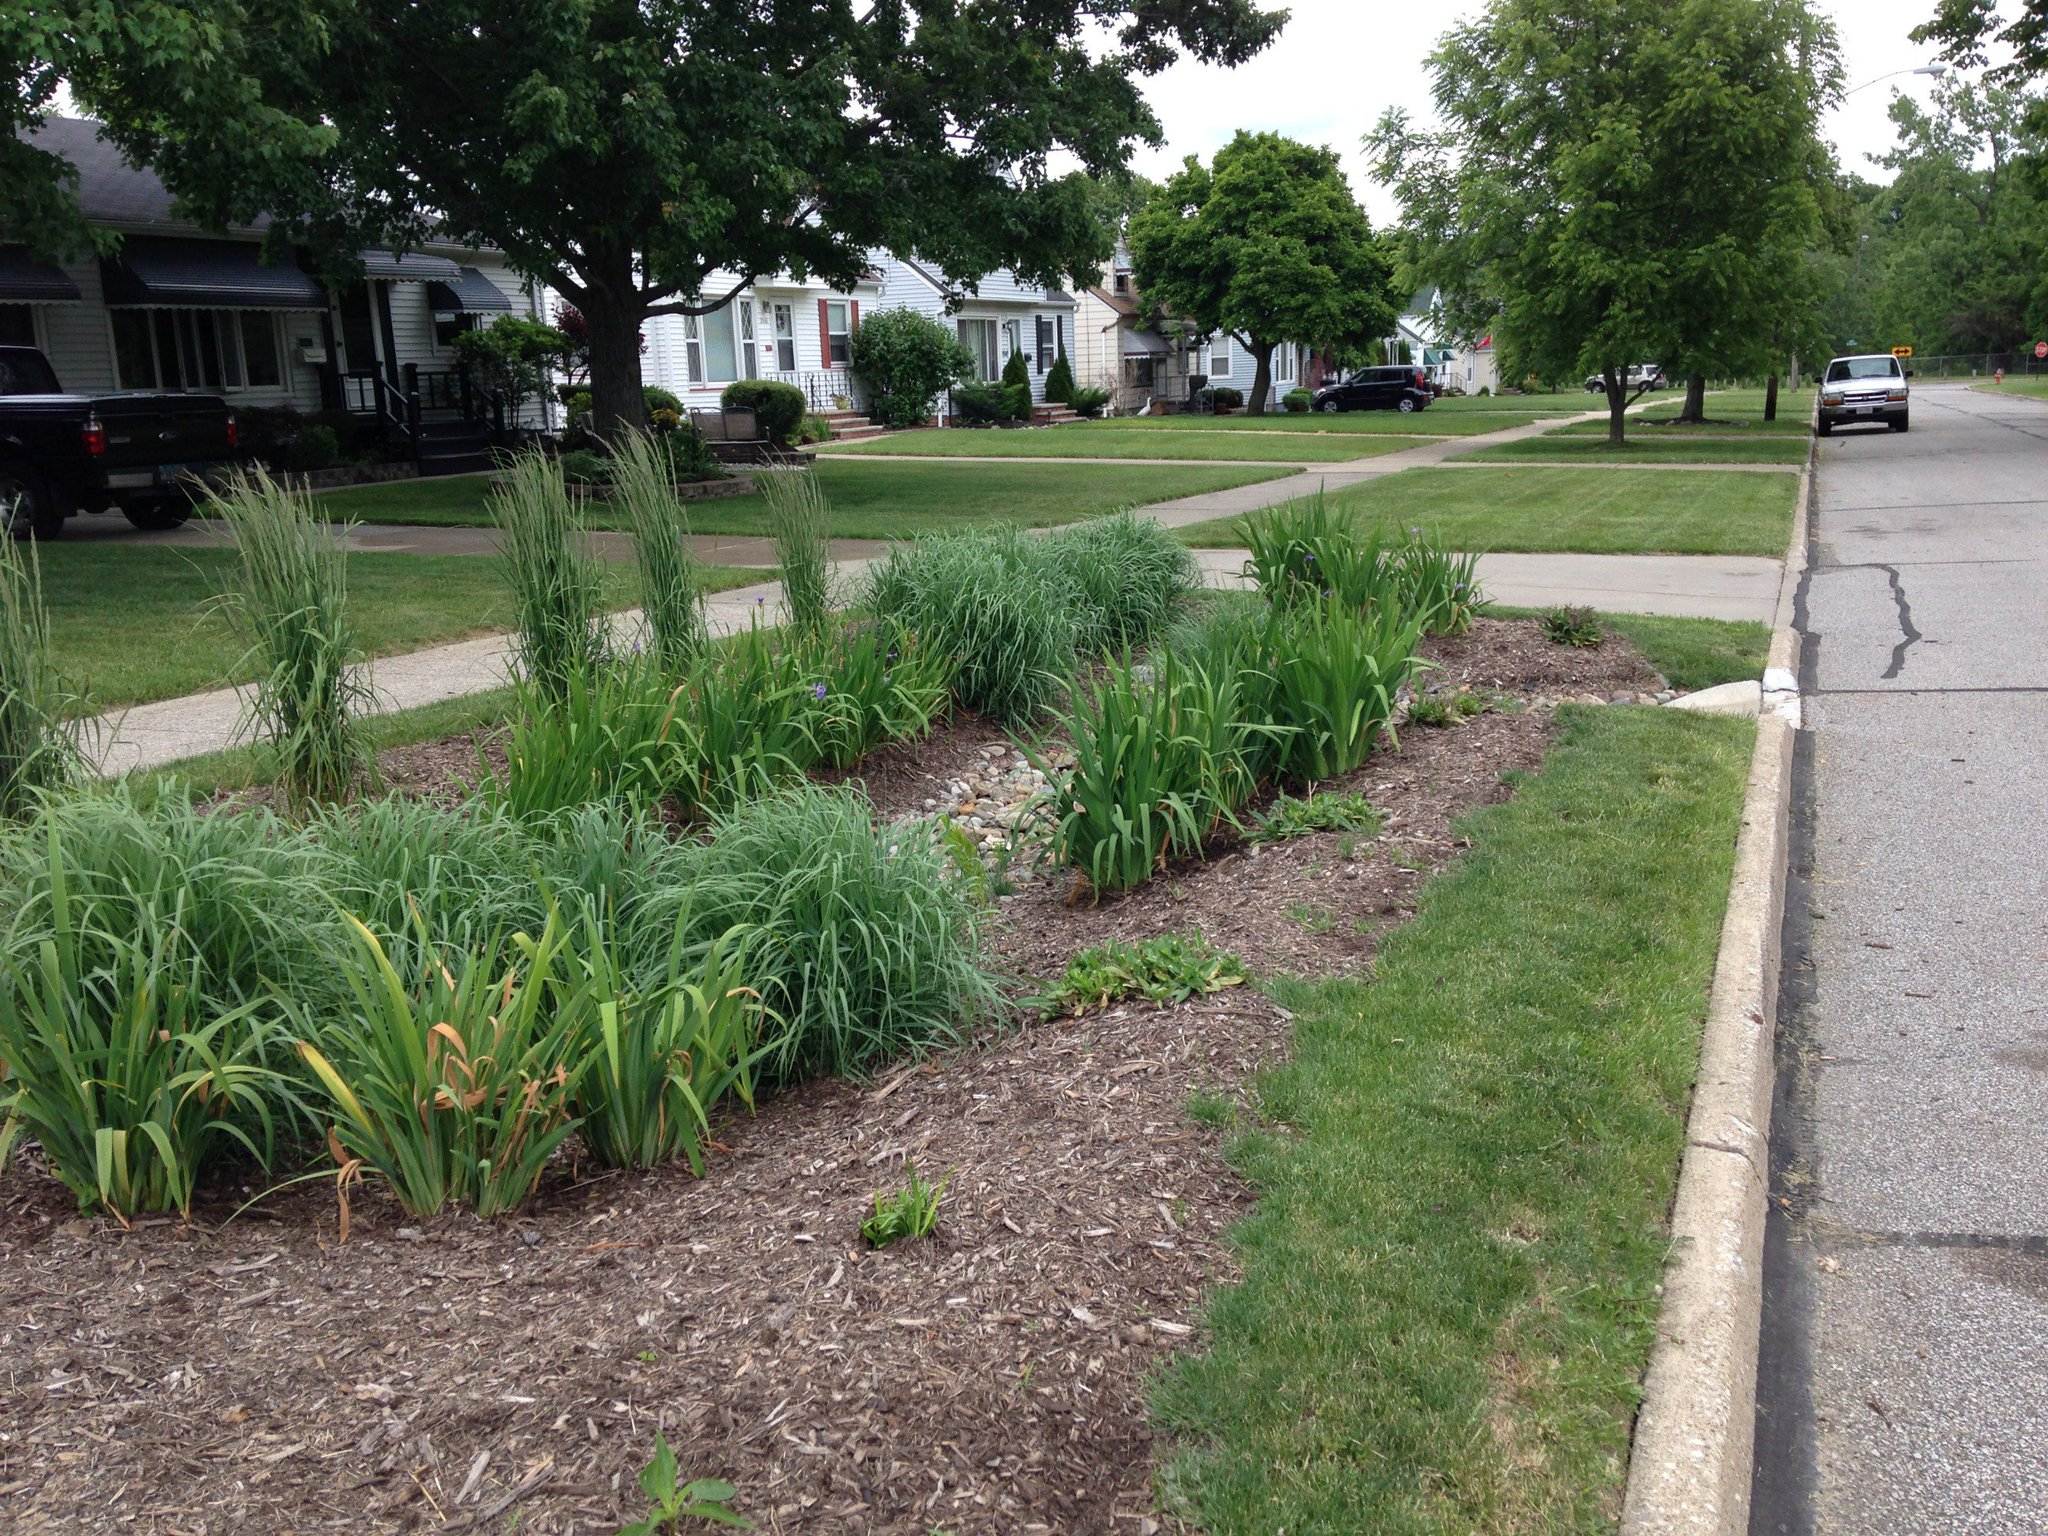 The bioretention cells pictured here divert #stormwater from a street into the garden & keep it out of storm sewers entirely. #spottheSCM https://t.co/gdAH6WVz6y